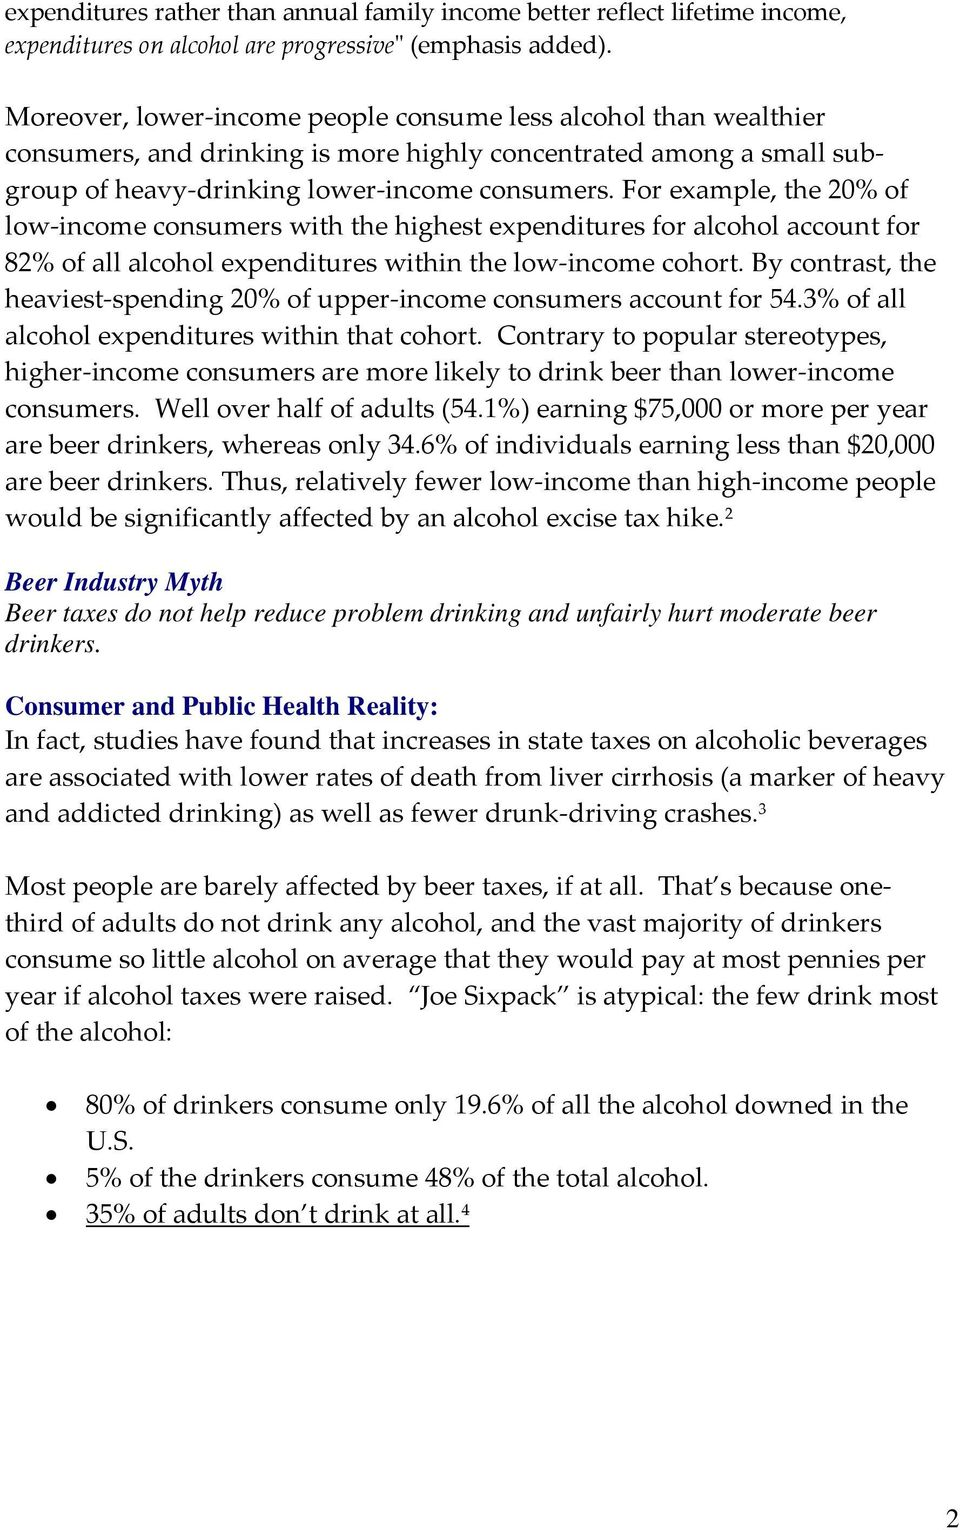 For example, the 20% of low income consumers with the highest expenditures for alcohol account for 82% of all alcohol expenditures within the low income cohort.